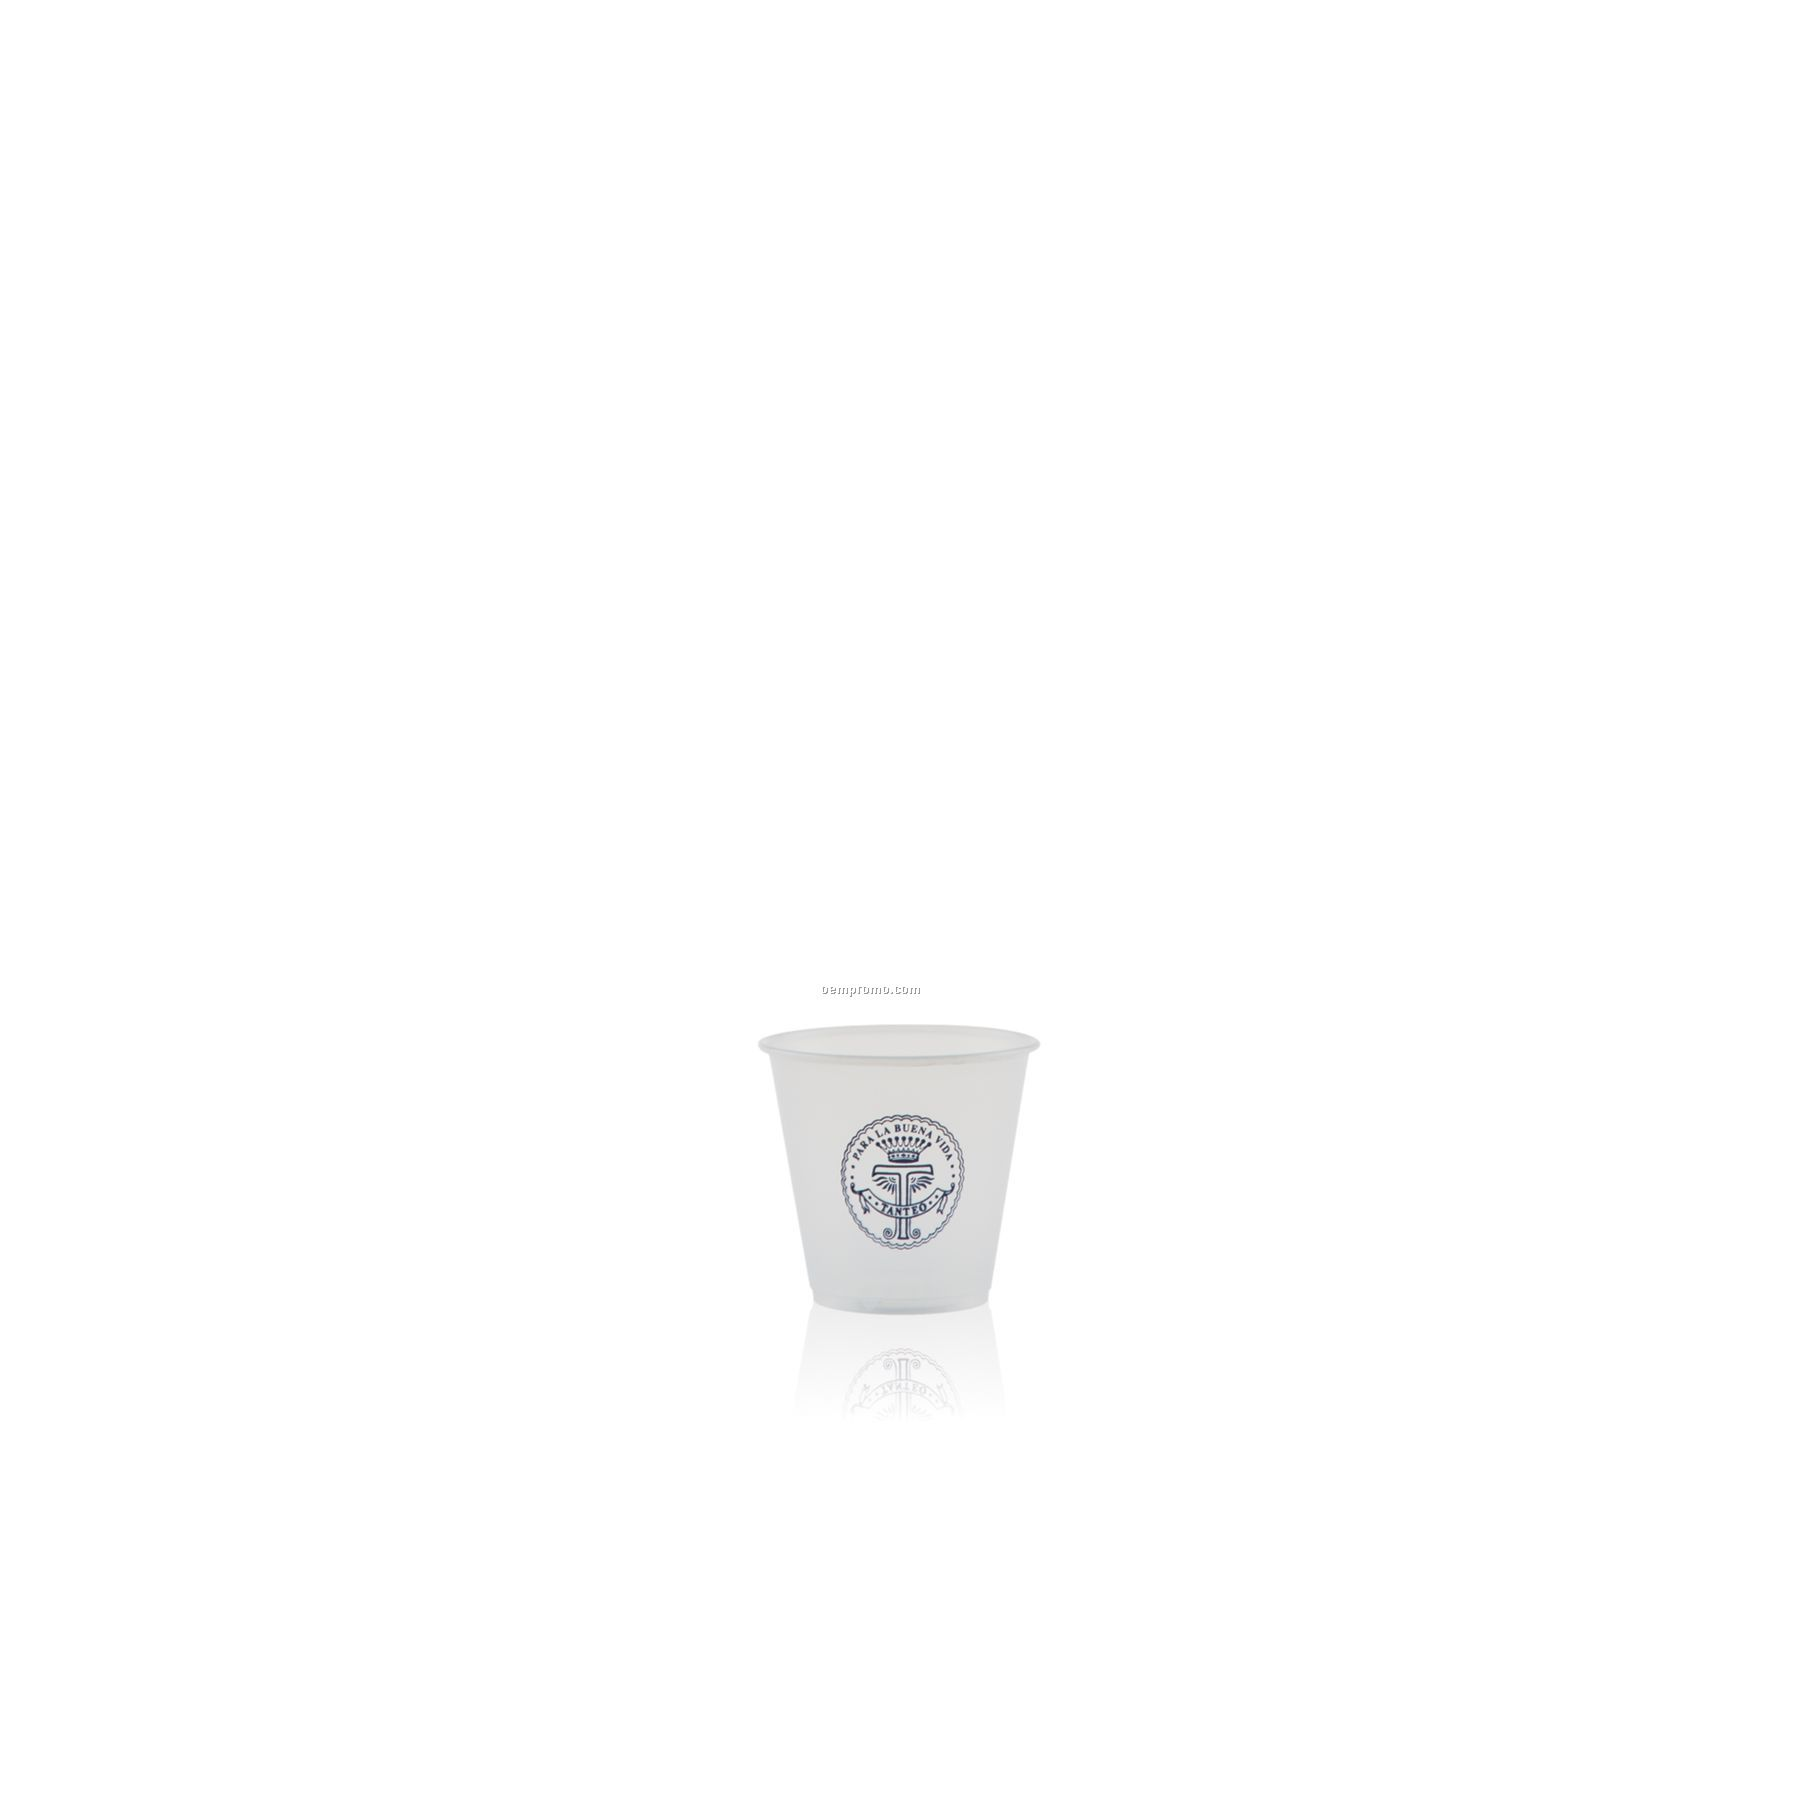 3.5 Oz. Soft Sided Frosted Cup